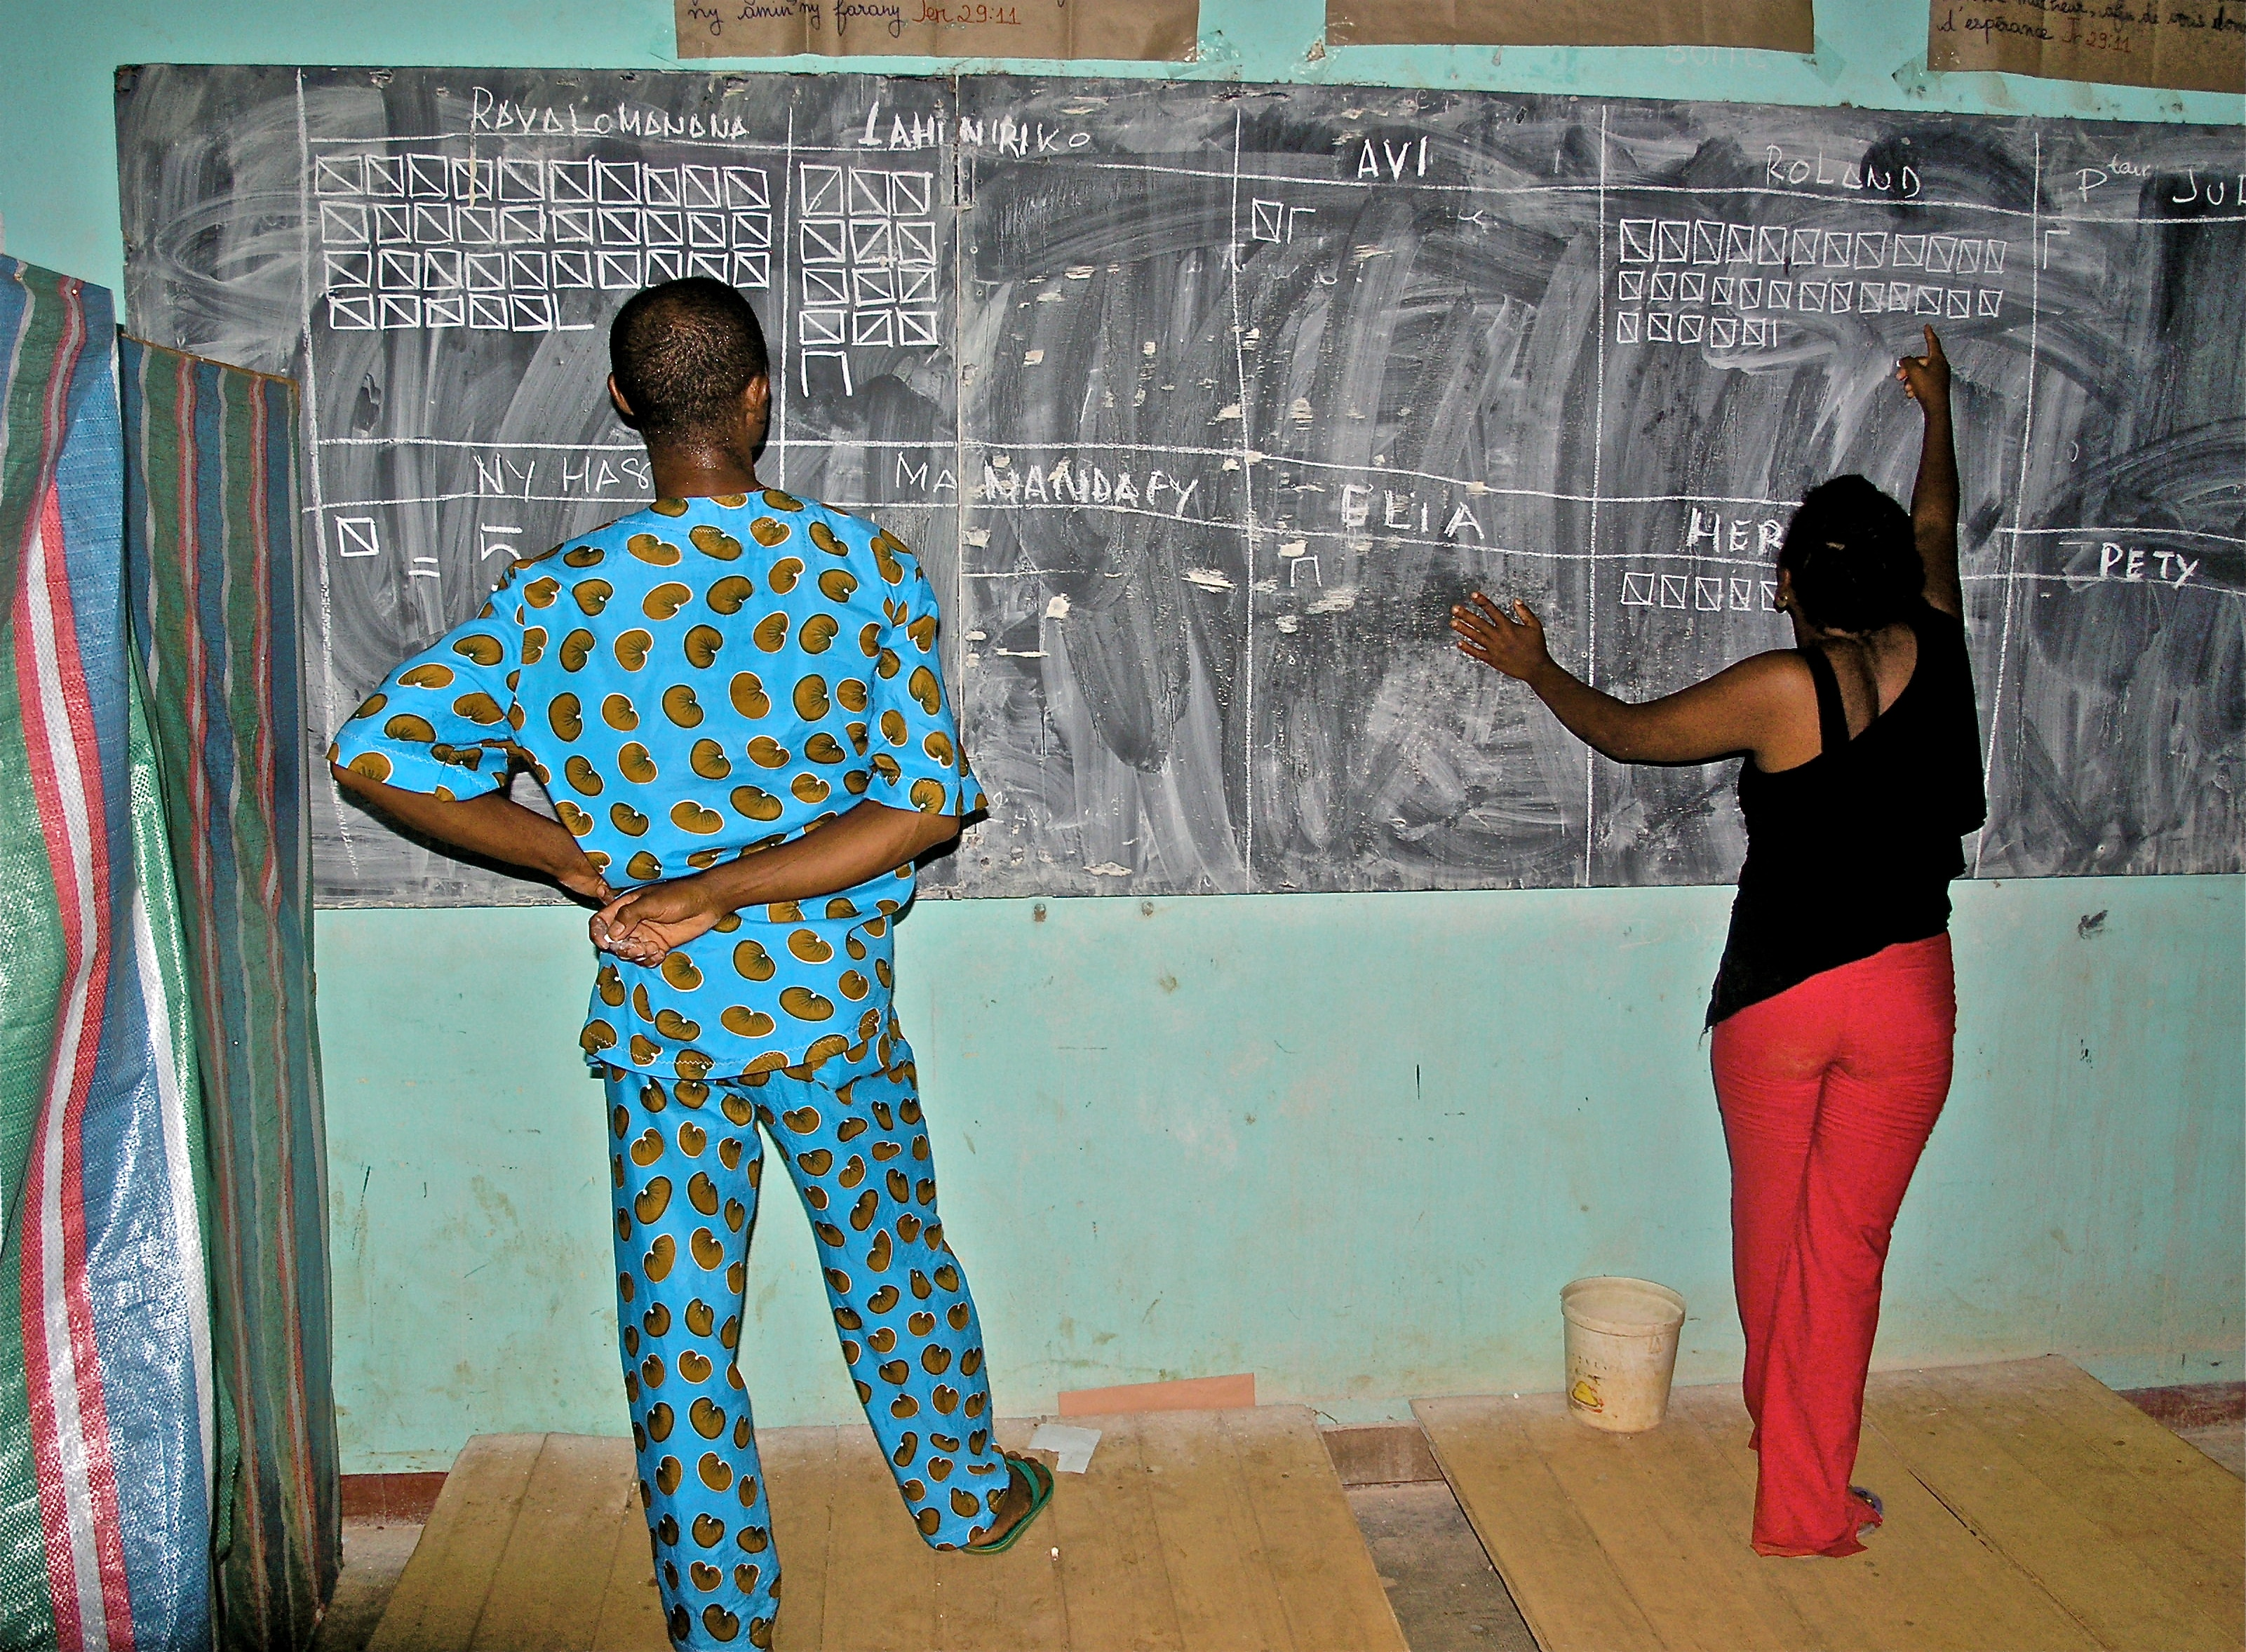 A blackboard at a school in Madagascar is used to list the results from the elections in 2006.